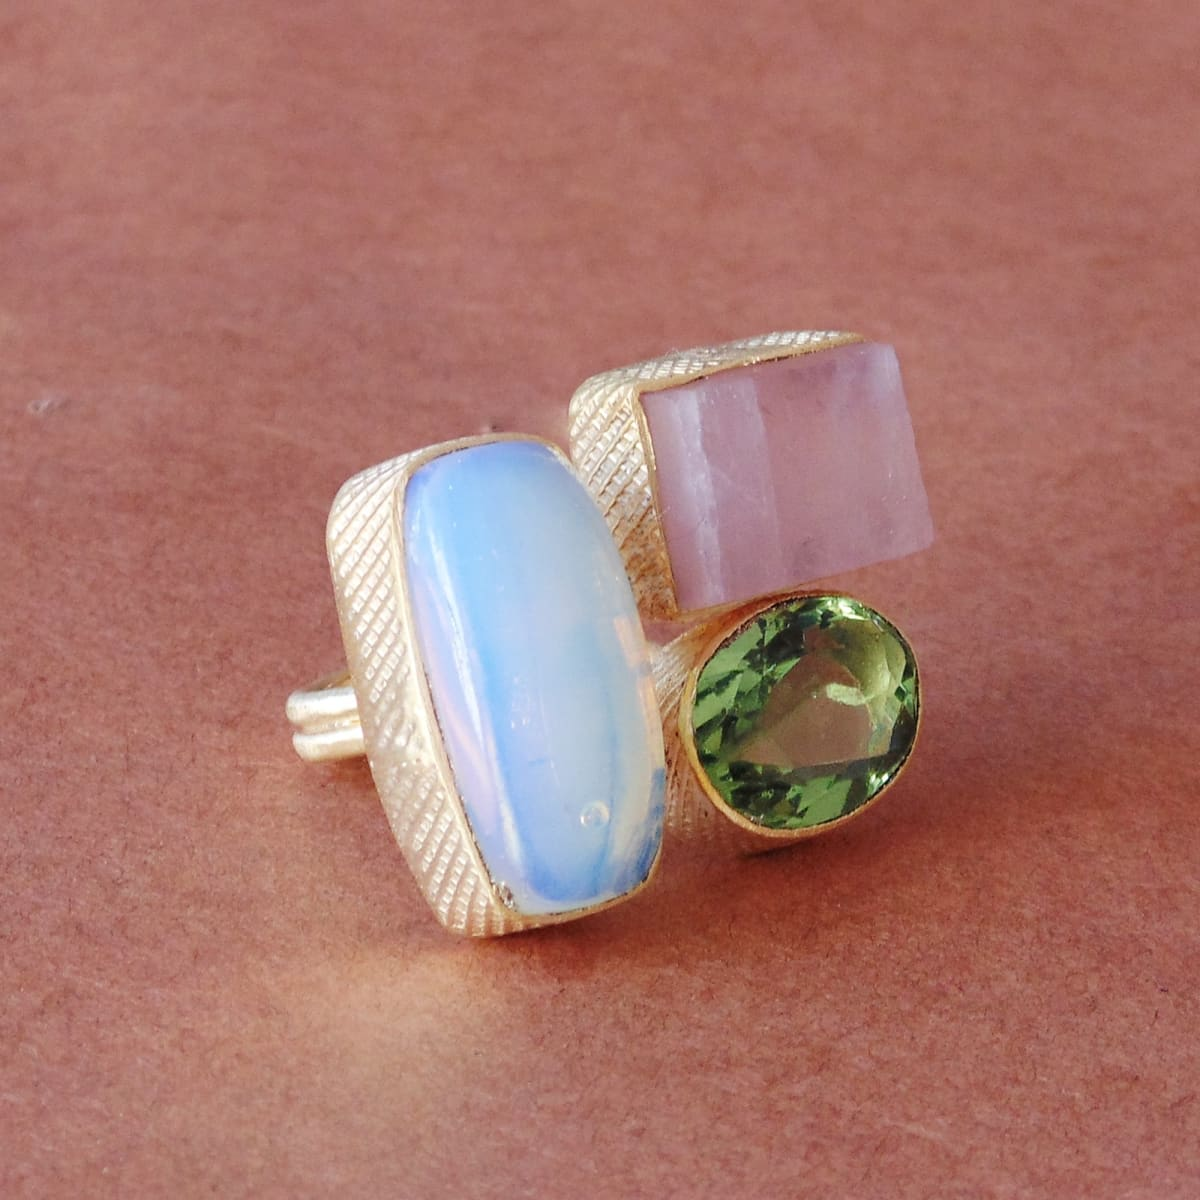 Handcrafted 18K Gold Vermeil Opalite Rose Quartz And Green Amethyst Gemstone Large Ring - by Bhagat Jewels